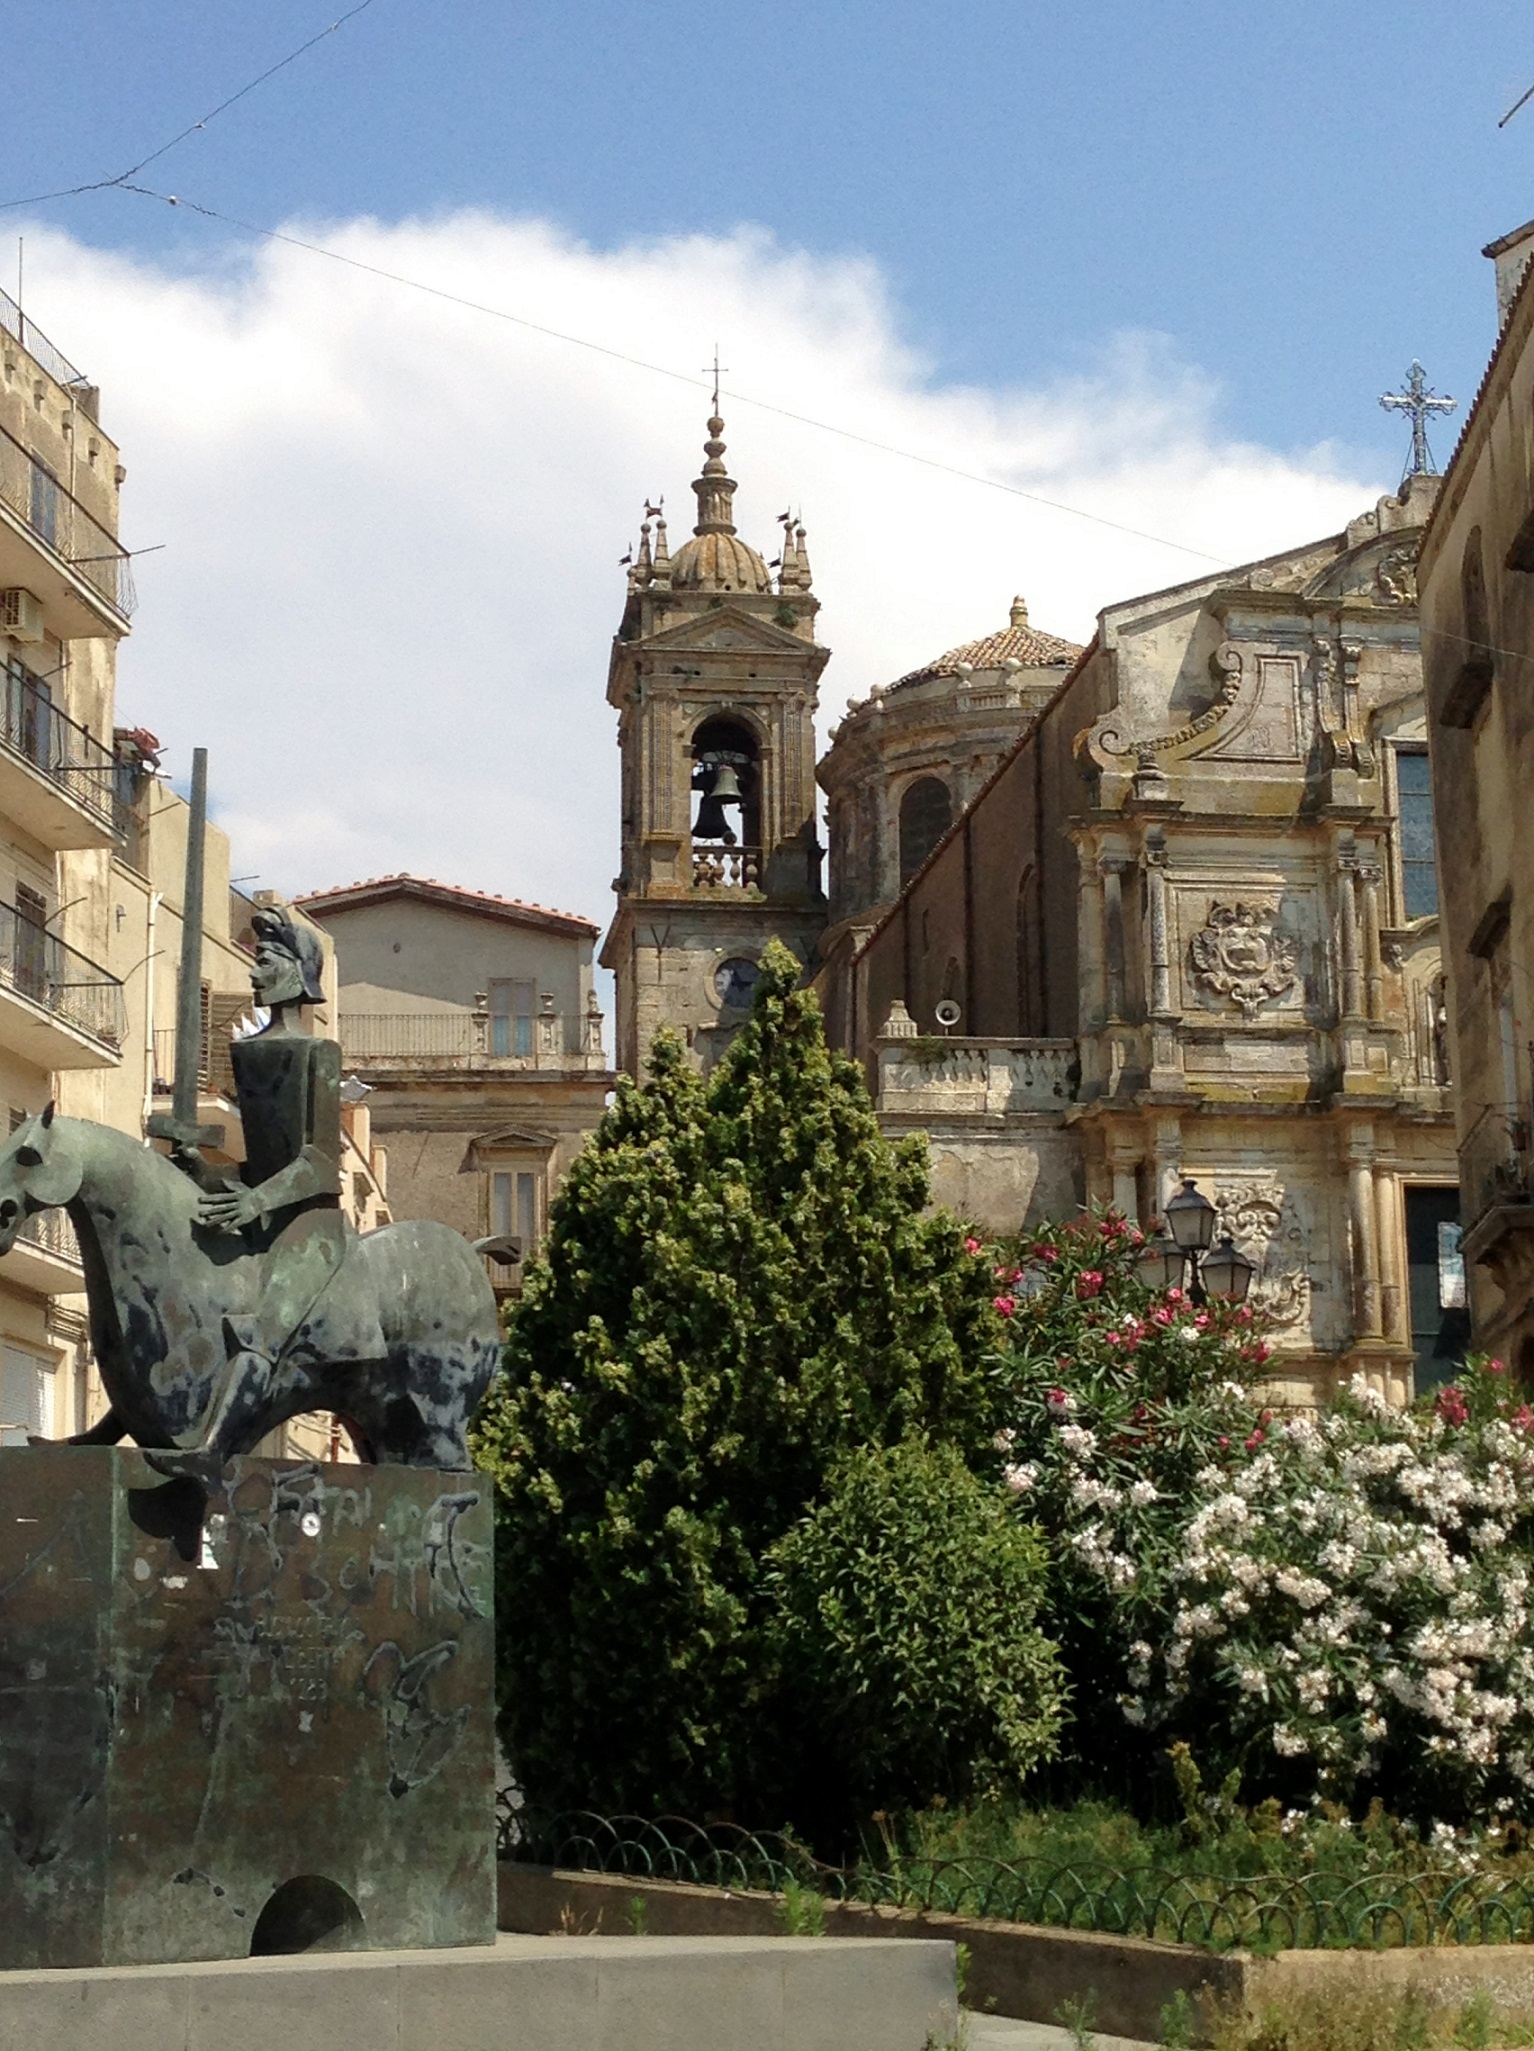 On the ceramics trail in Caltagirone